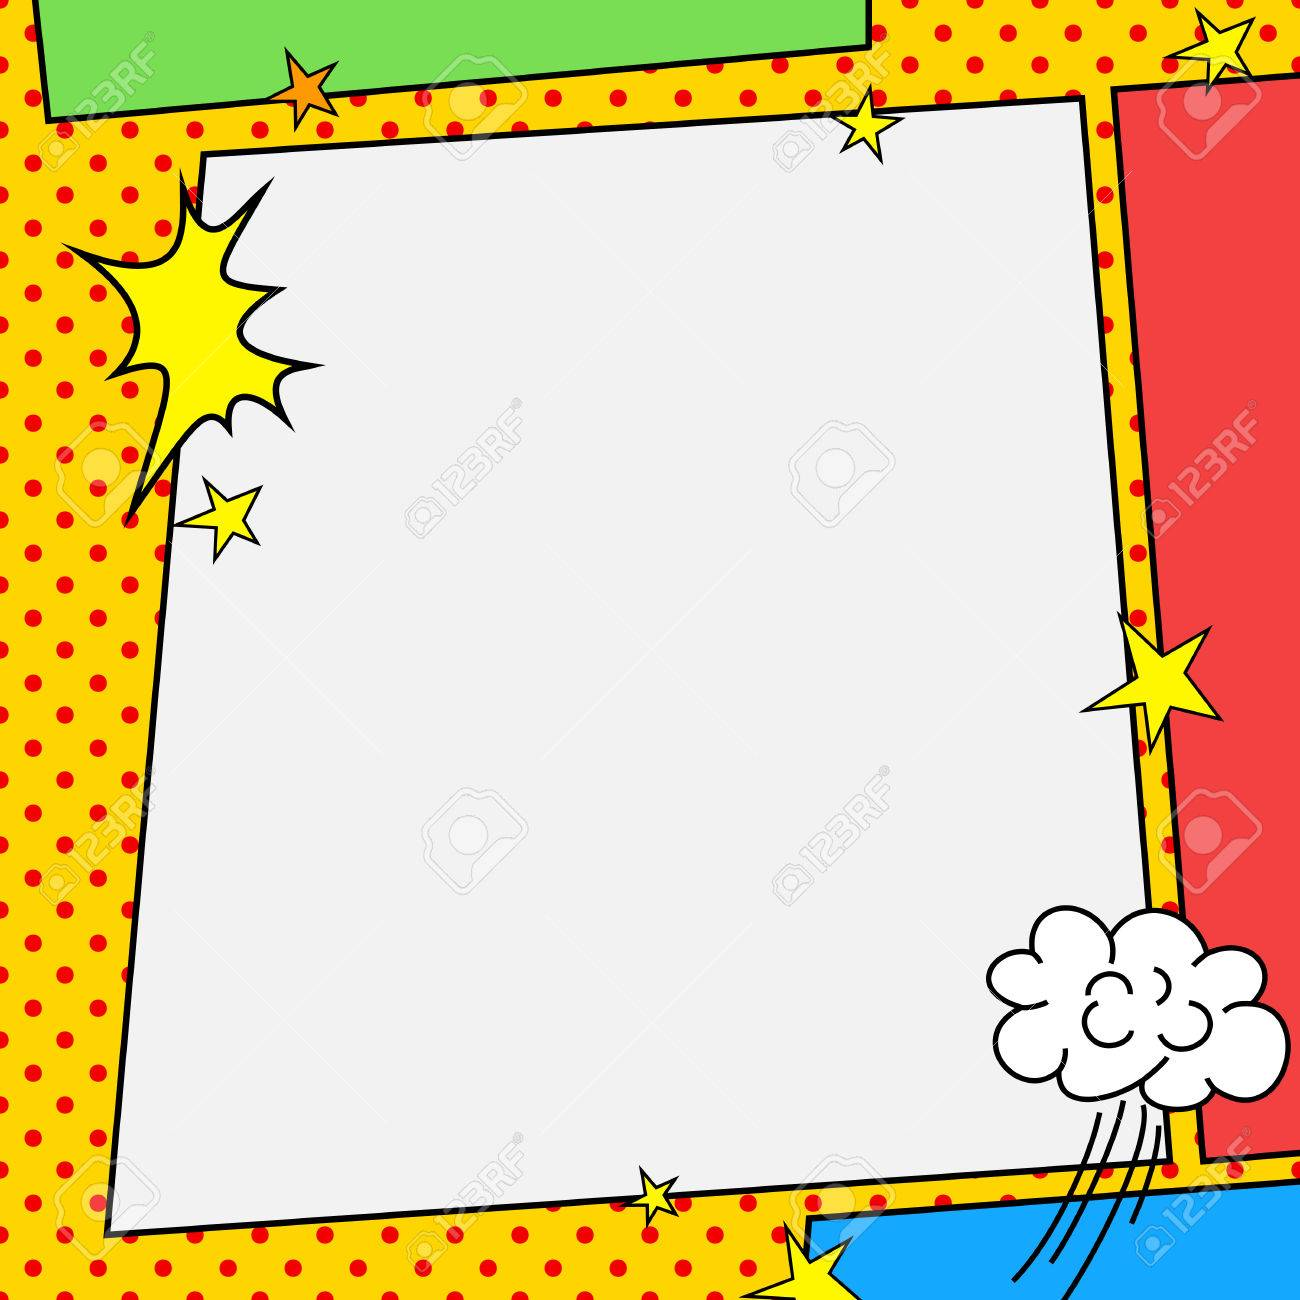 Comic book style frame - 44491814